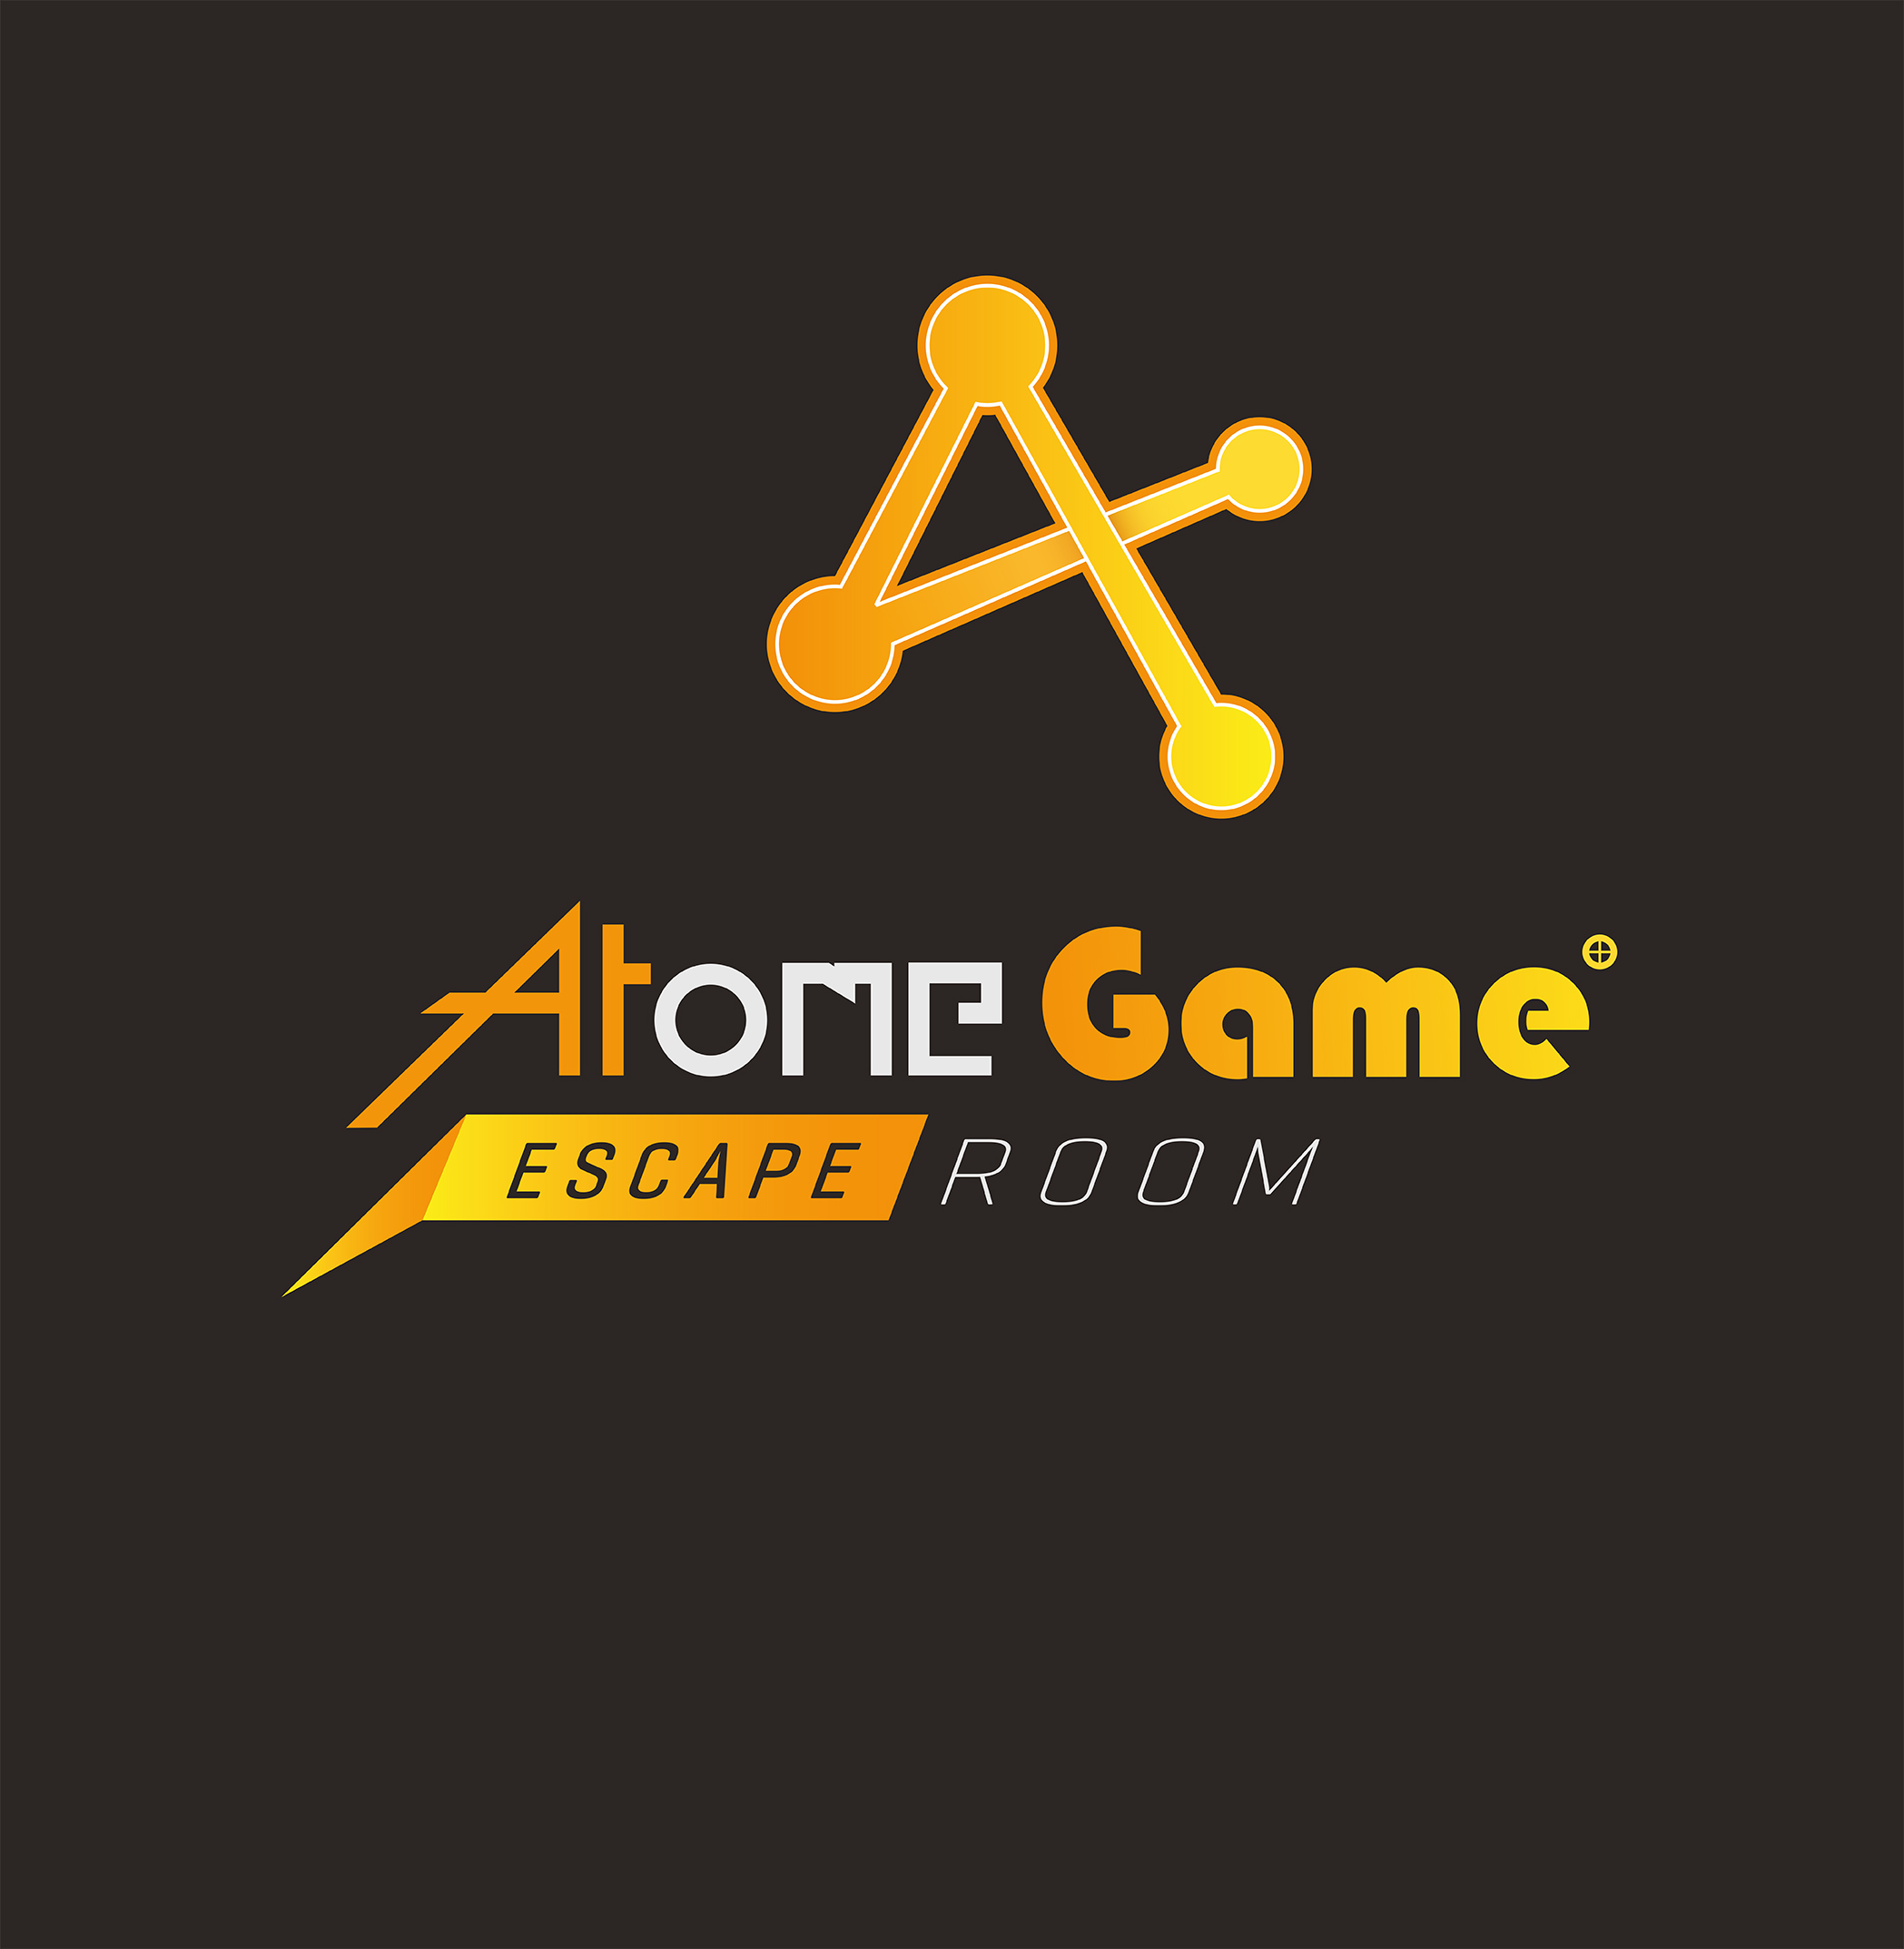 atome game caen escape game avis promo. Black Bedroom Furniture Sets. Home Design Ideas